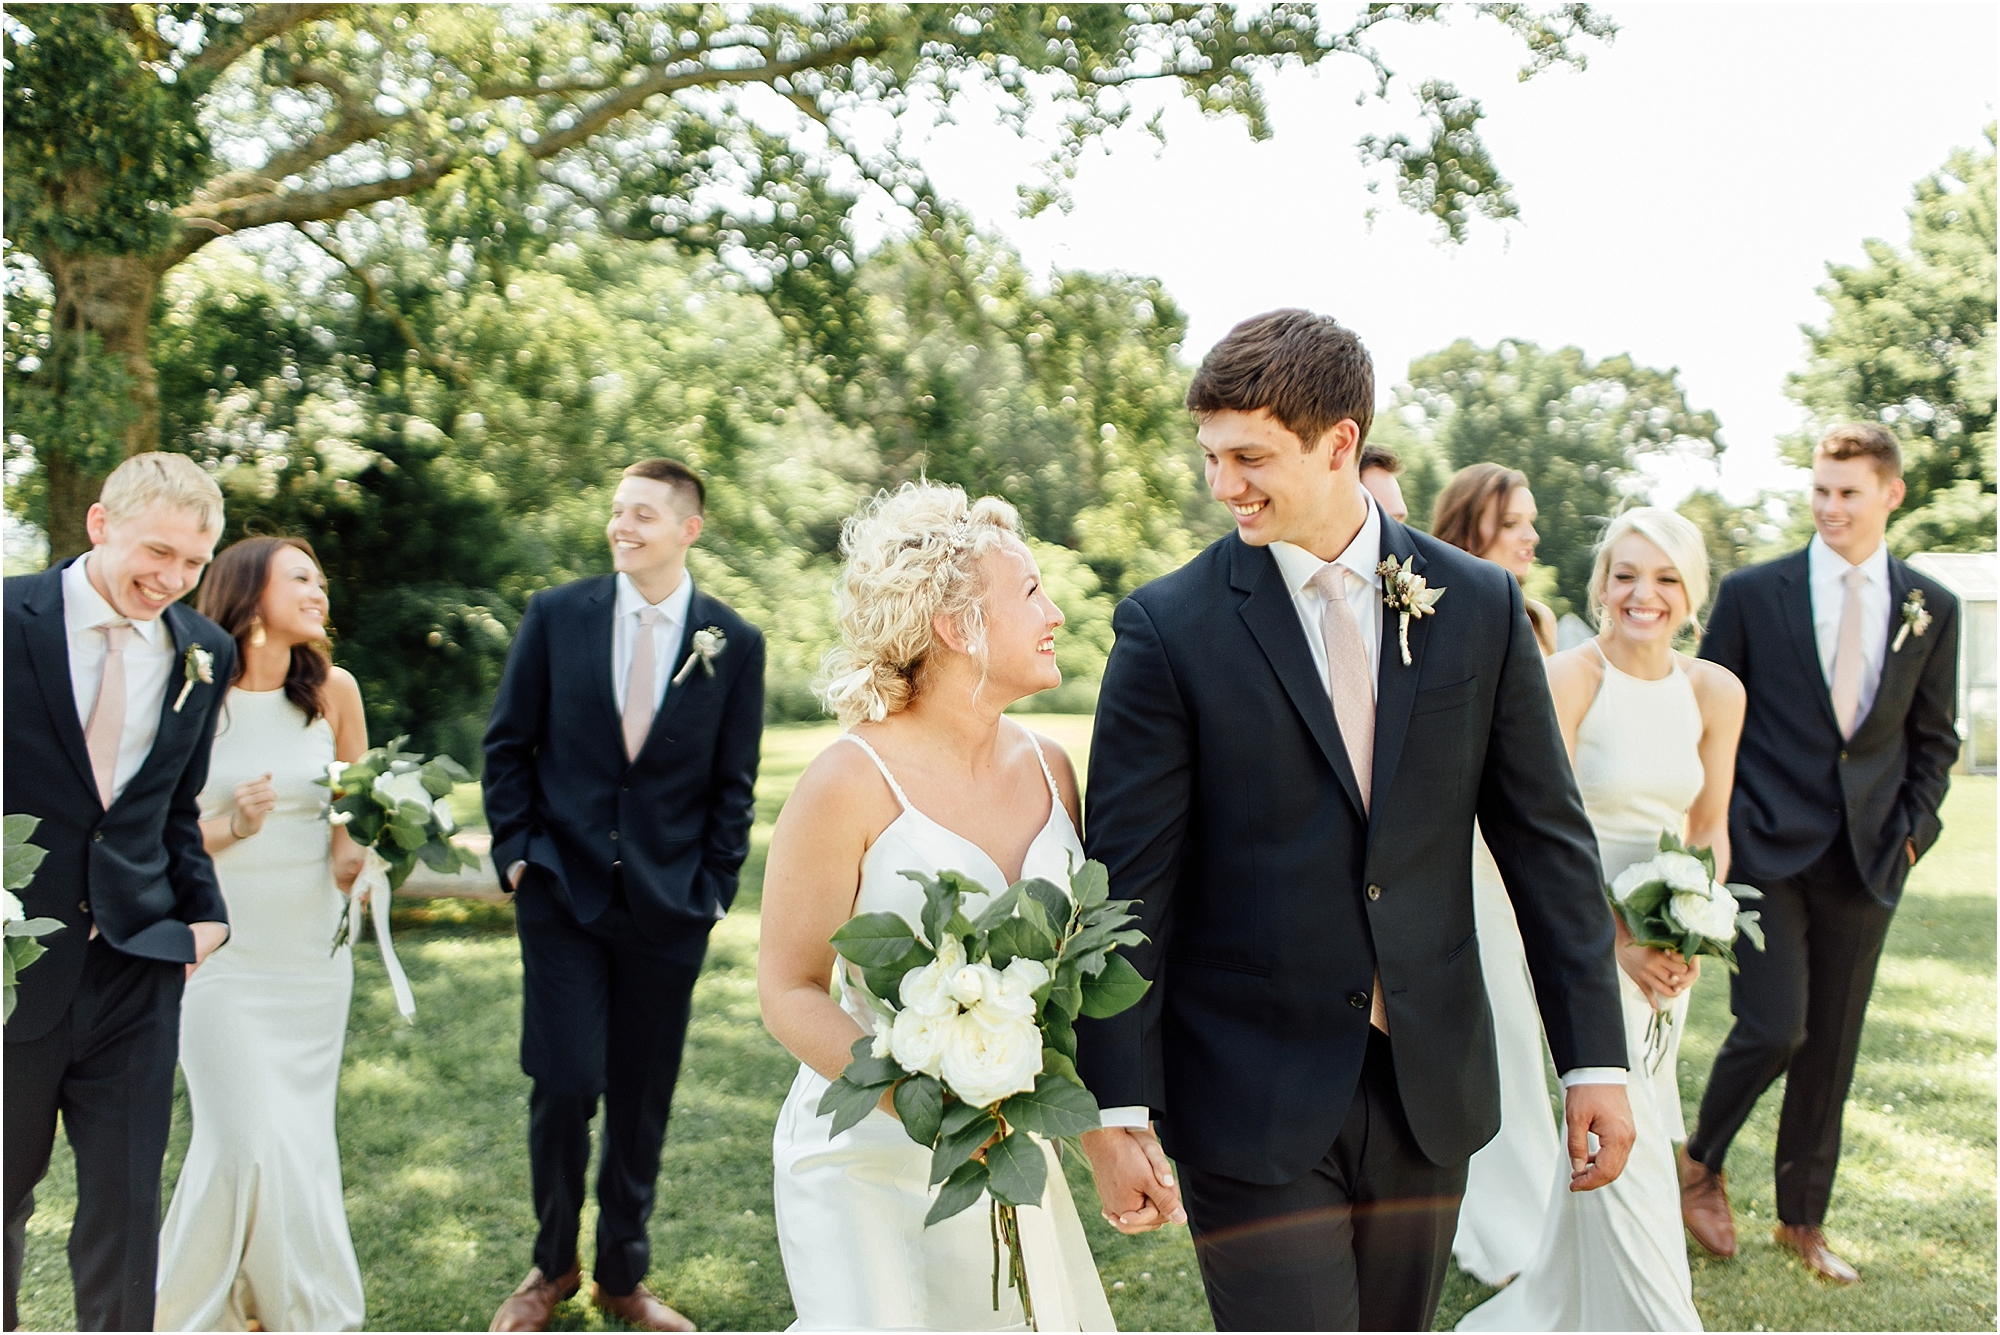 lindsey ann photography, birmingham wedding photographer, the givens house, the givens house at glenn hill, town creek al wedding, alabama wedding photographer, huntsville wedding photographer, plantation wedding